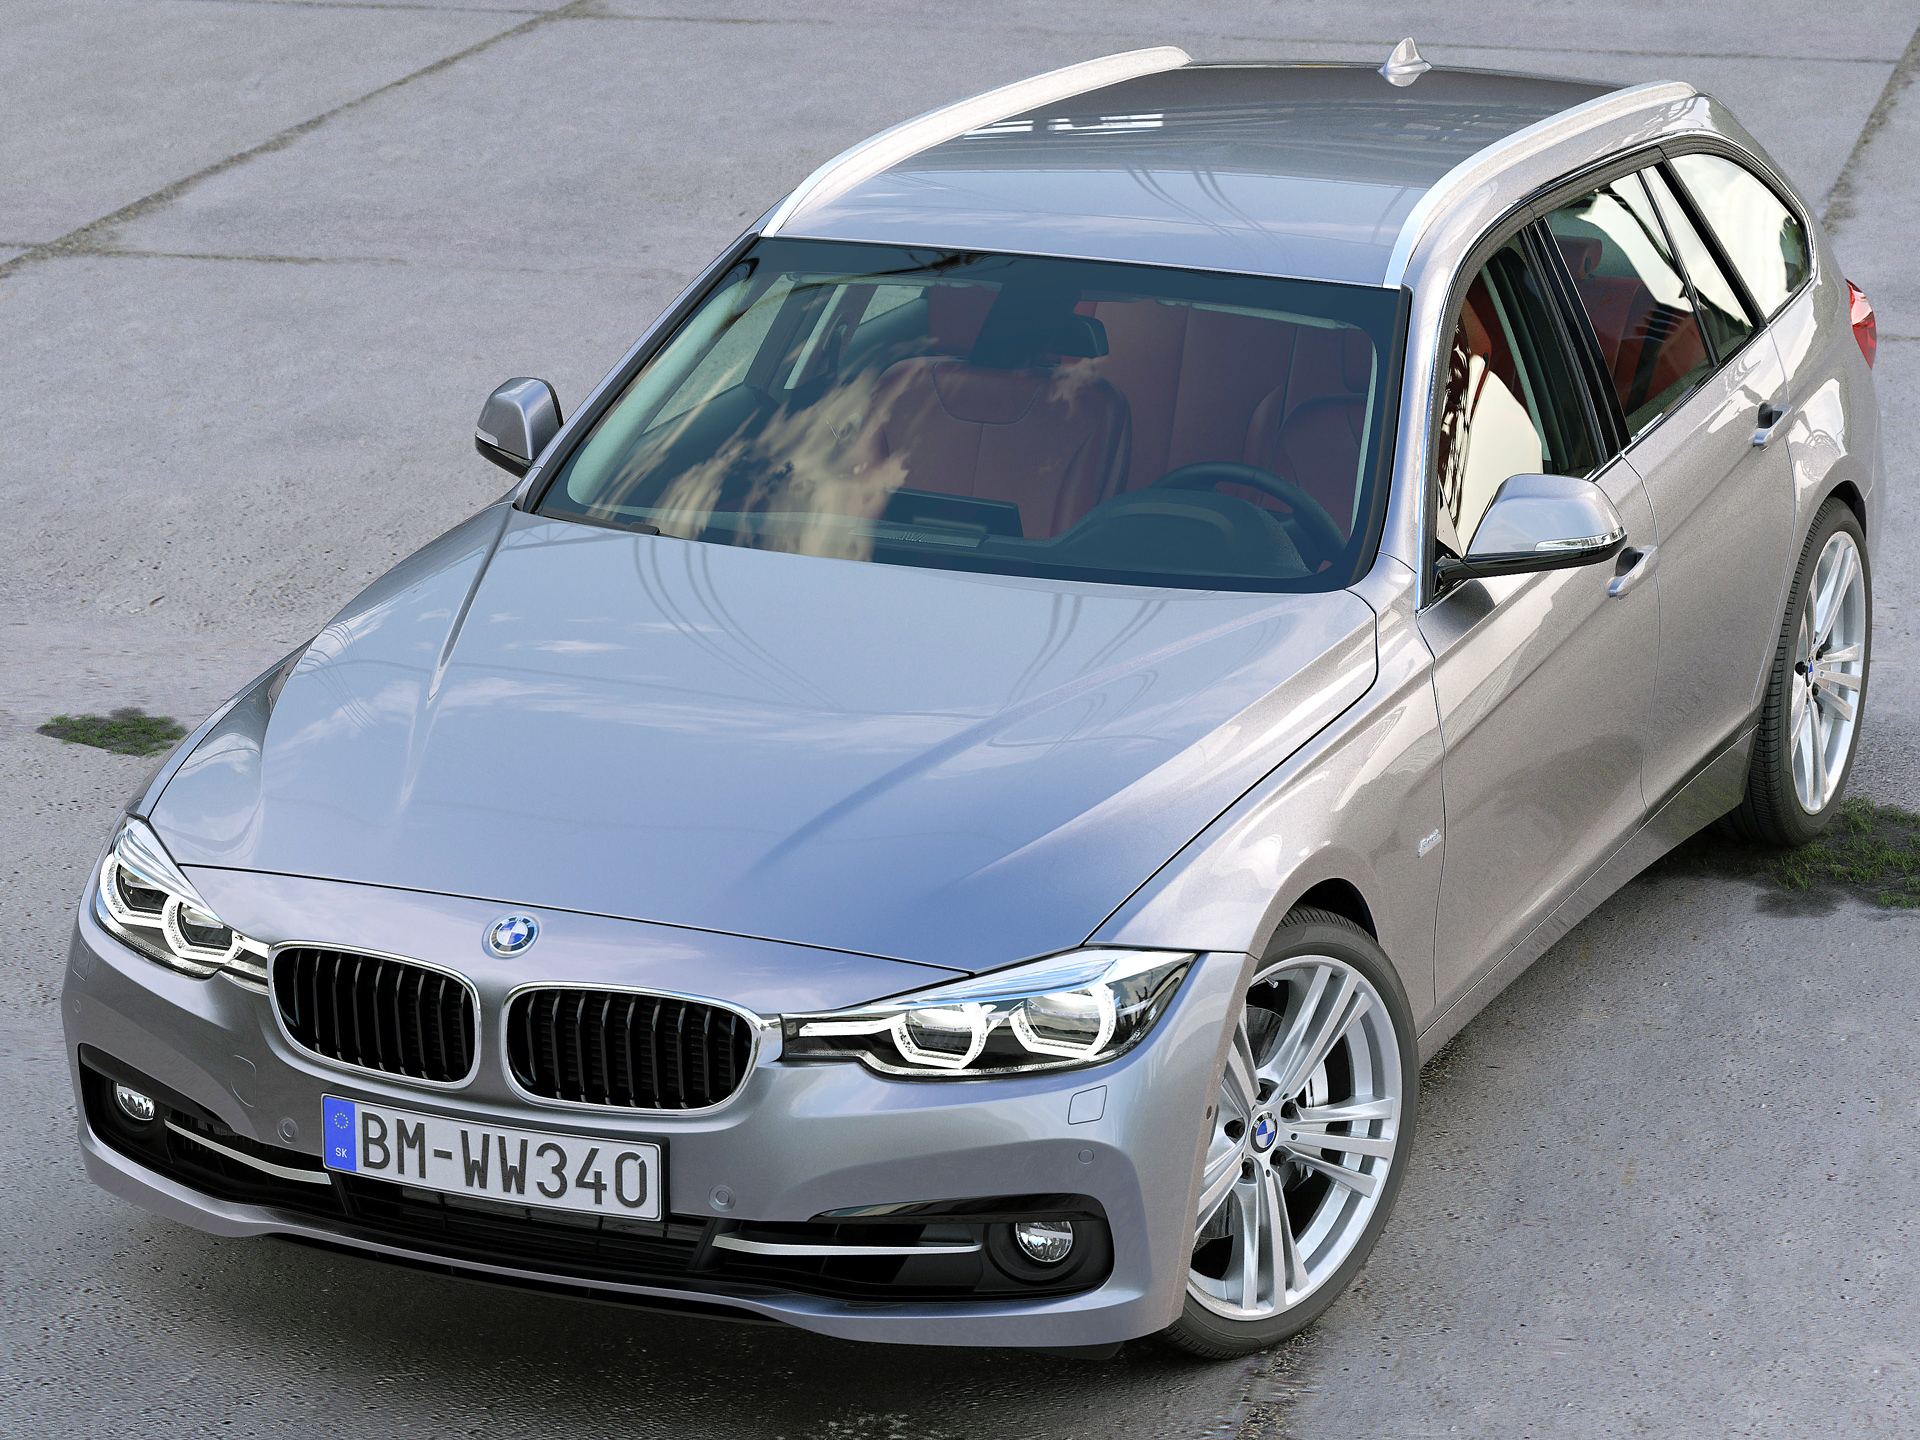 BMW Series Touring D Model Vehicles D Models I Ds Max - Bmw 3 series touring